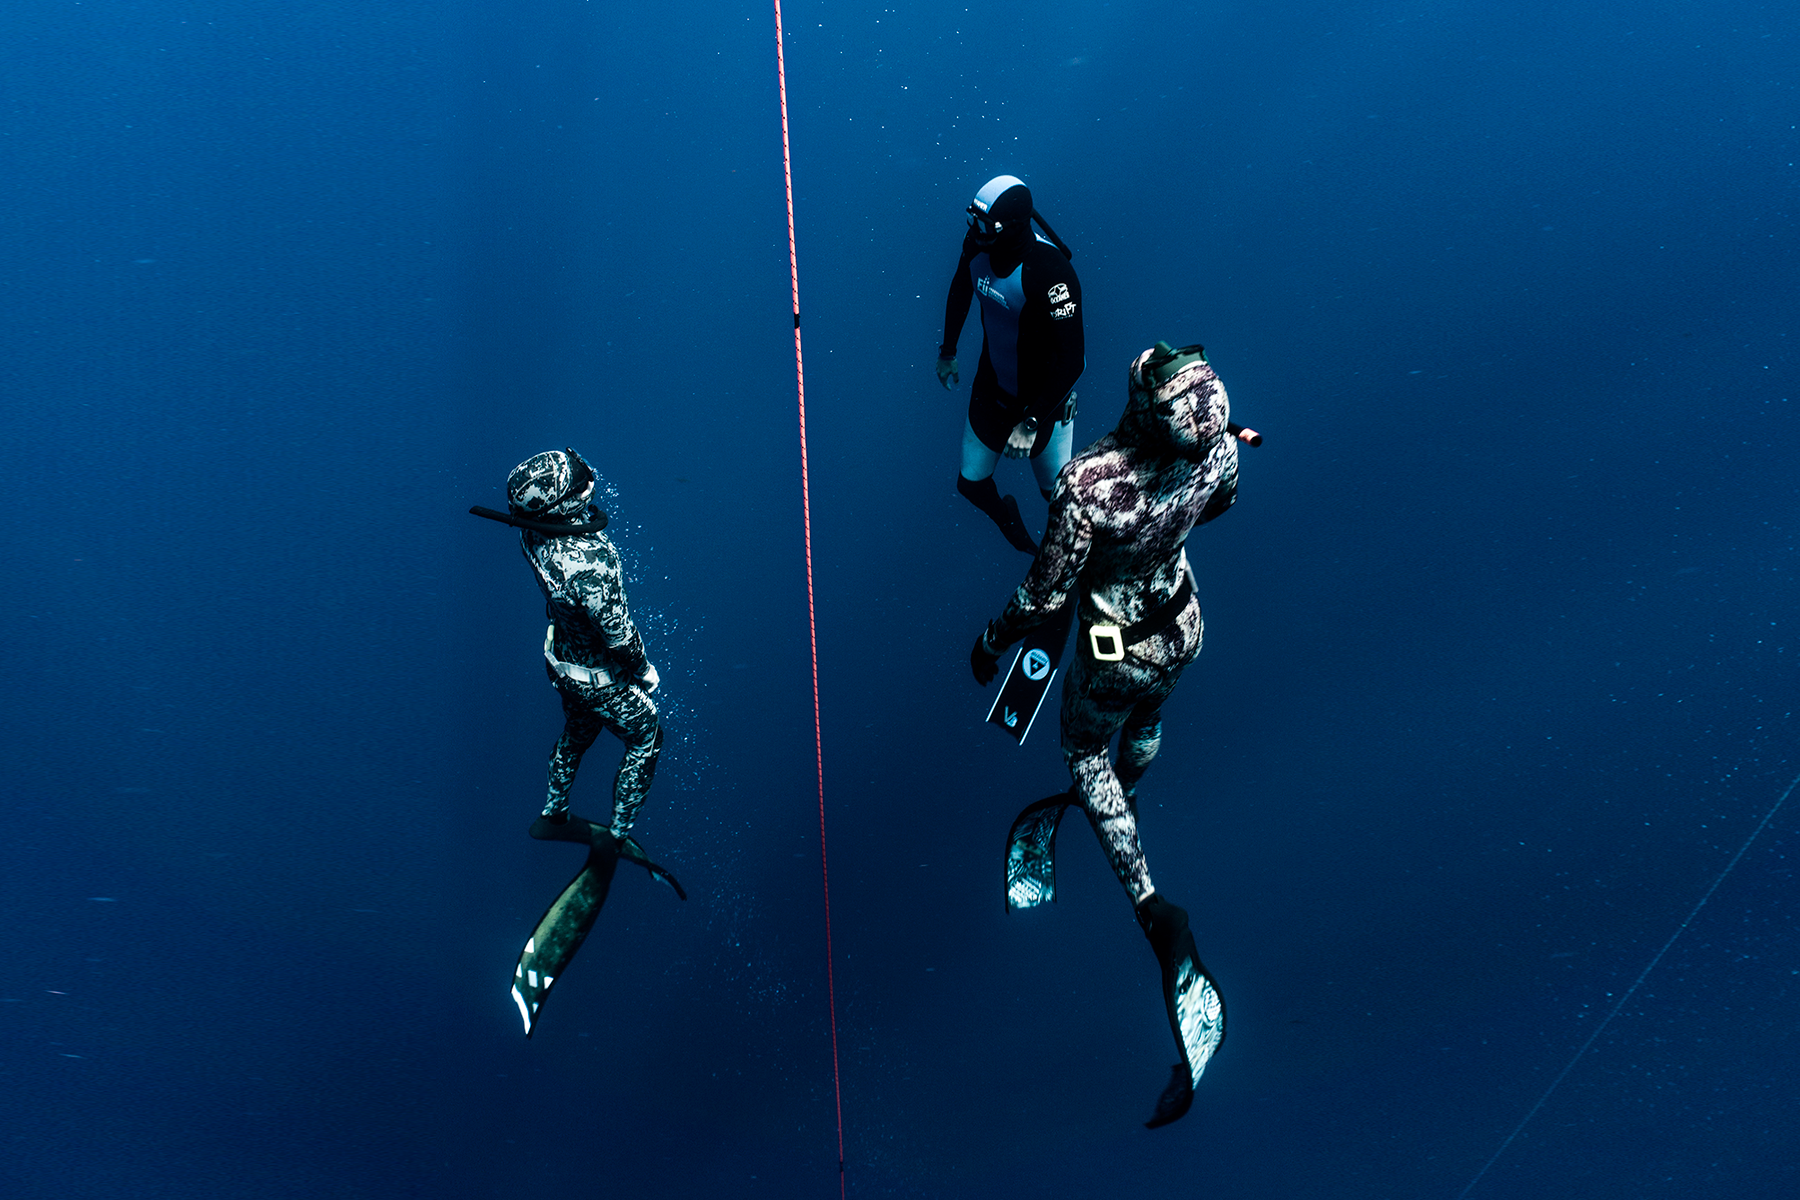 Level 2 freediver